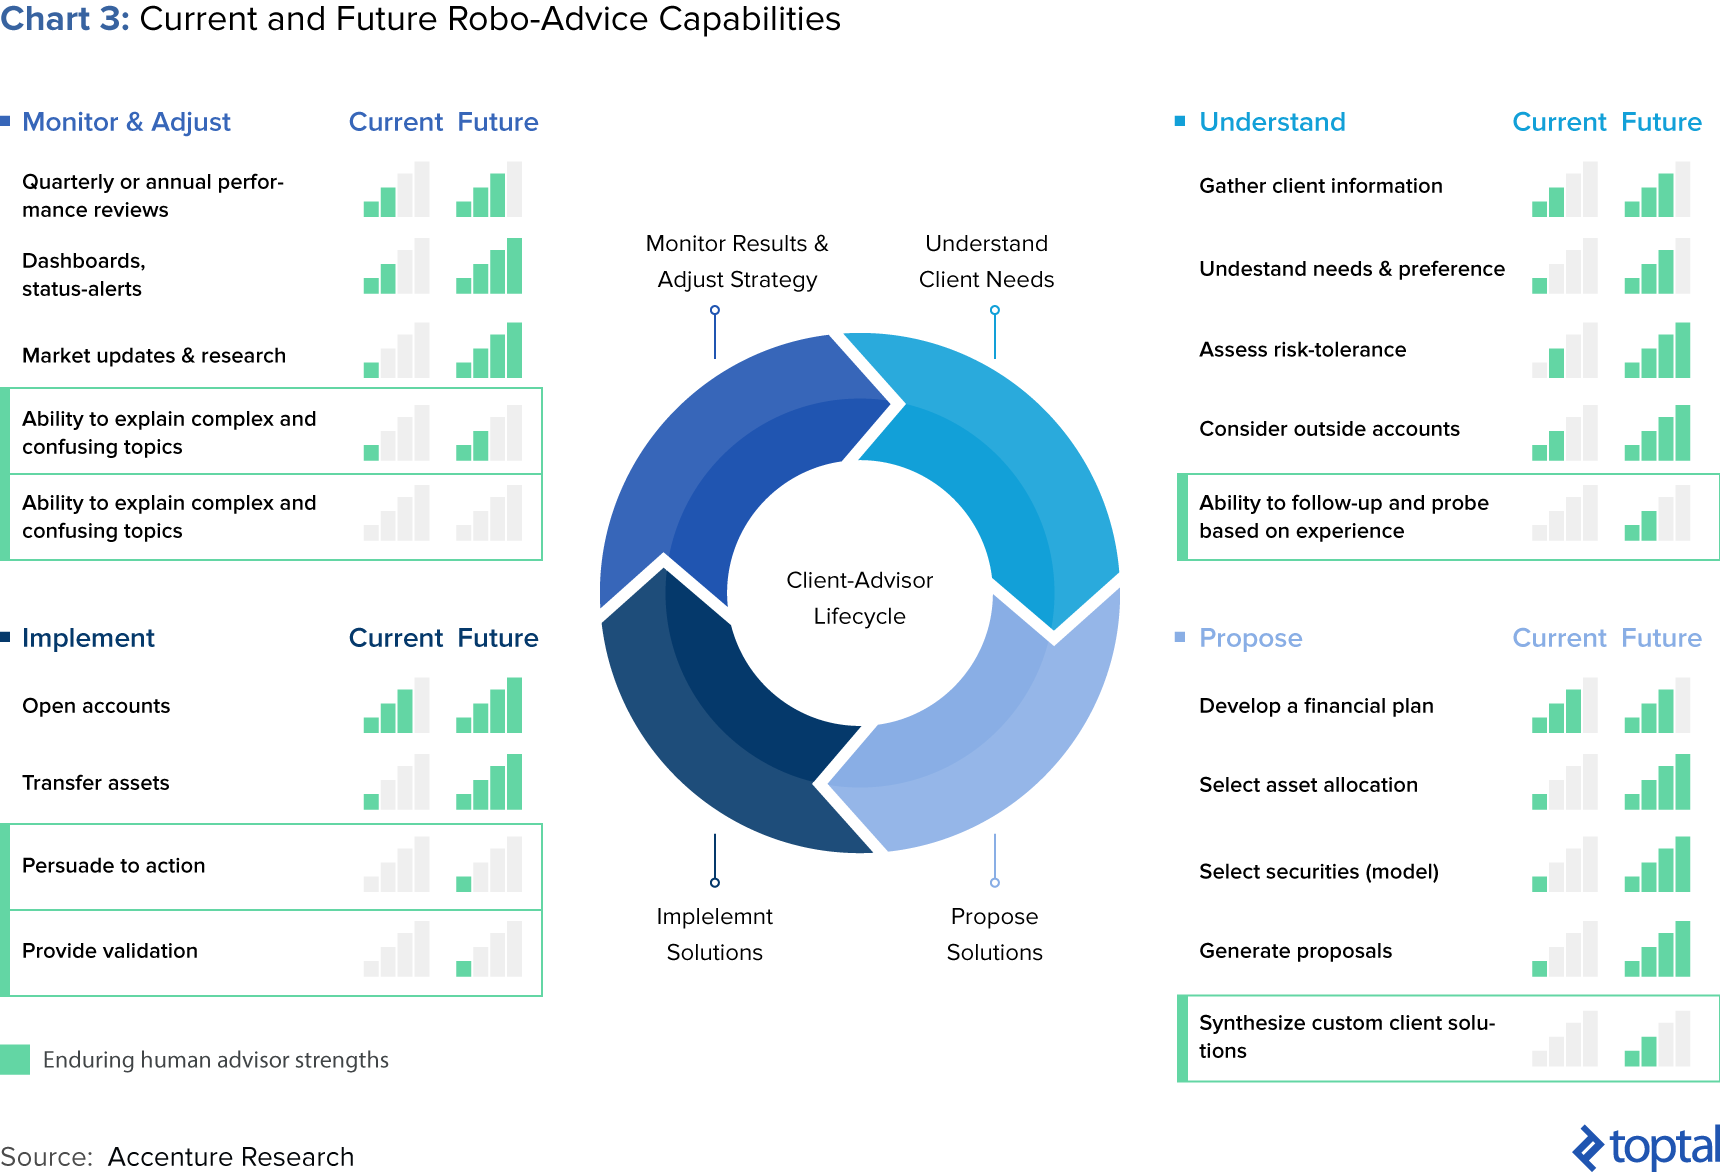 Chart 3: Current and Future Robo-advice Capabilities